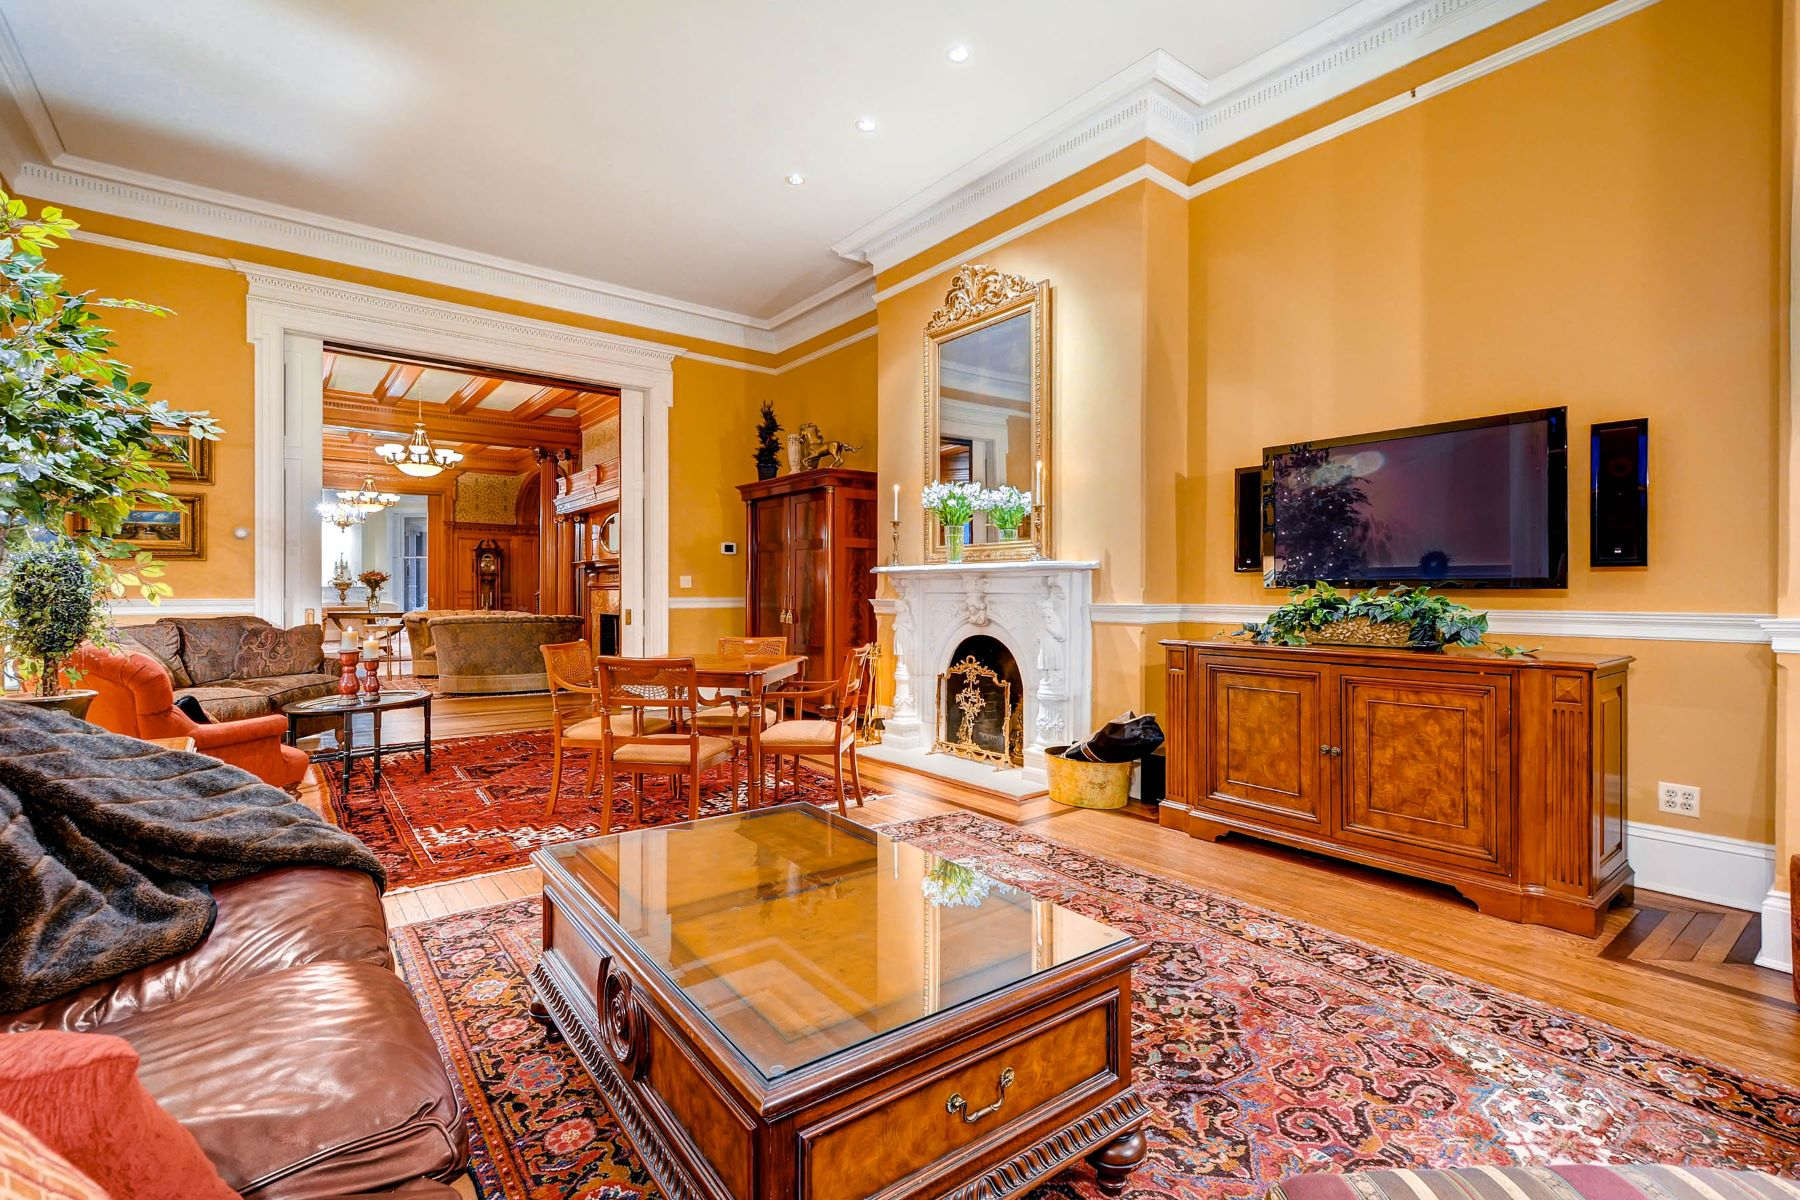 Additional photo for property listing at 703 Abell Ridge Circle 703 Abell Ridge Circle Towson, メリーランド 21204 アメリカ合衆国